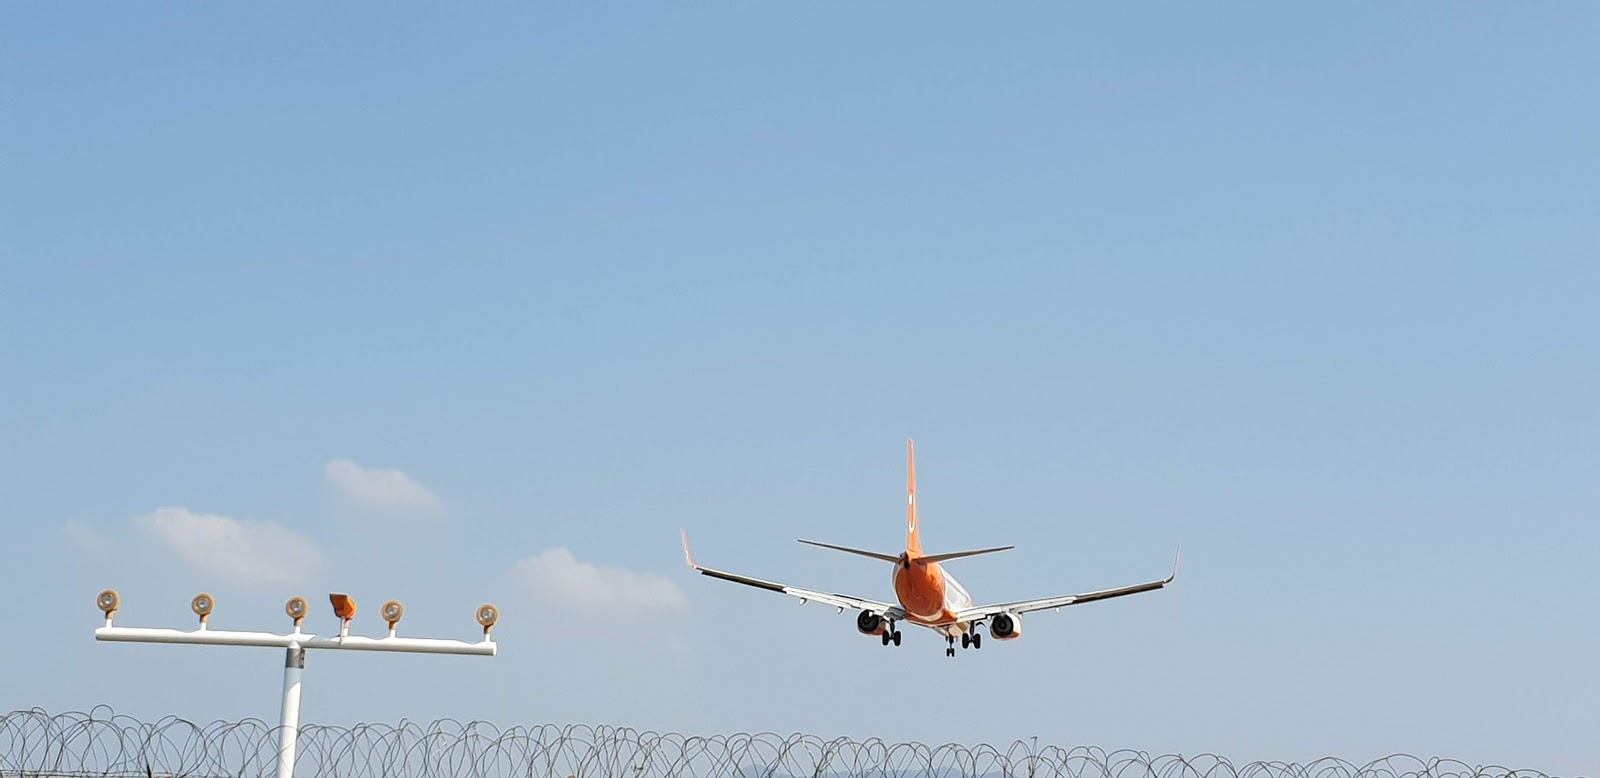 JEJU AIR LAUNCHES TWO NEW ROUTES FROM SOUTH KOREA TO YANJI